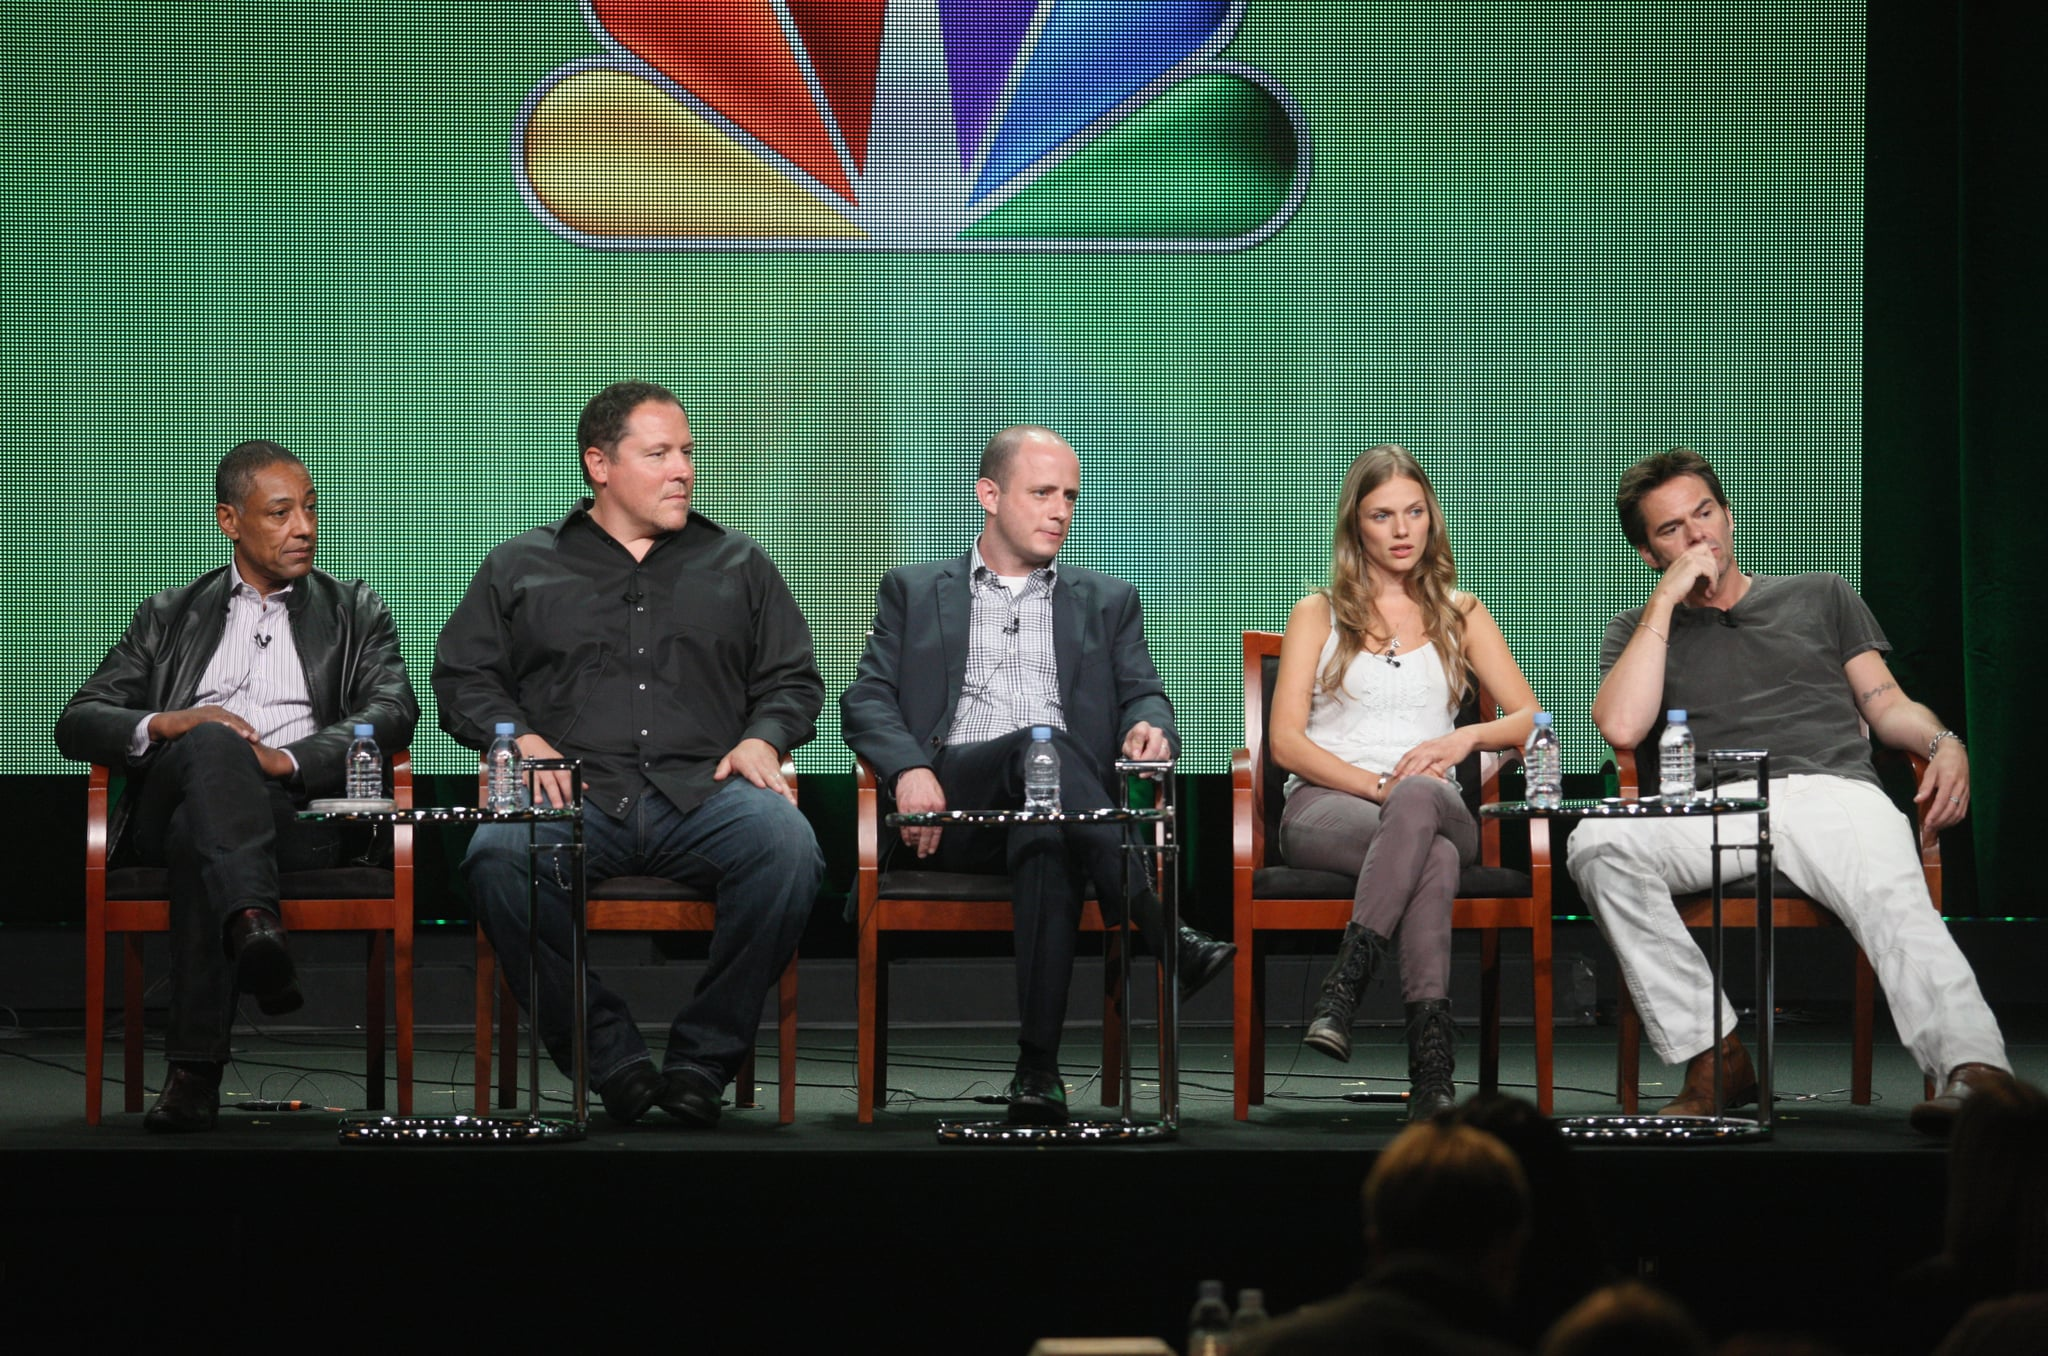 Giancarlo Esposito, executive producers Jon Favreau, Eric Kripke and actors Tracy Spiridakos and Billy Burke spoke at the 2012 Summer TCA panel for Revolution.